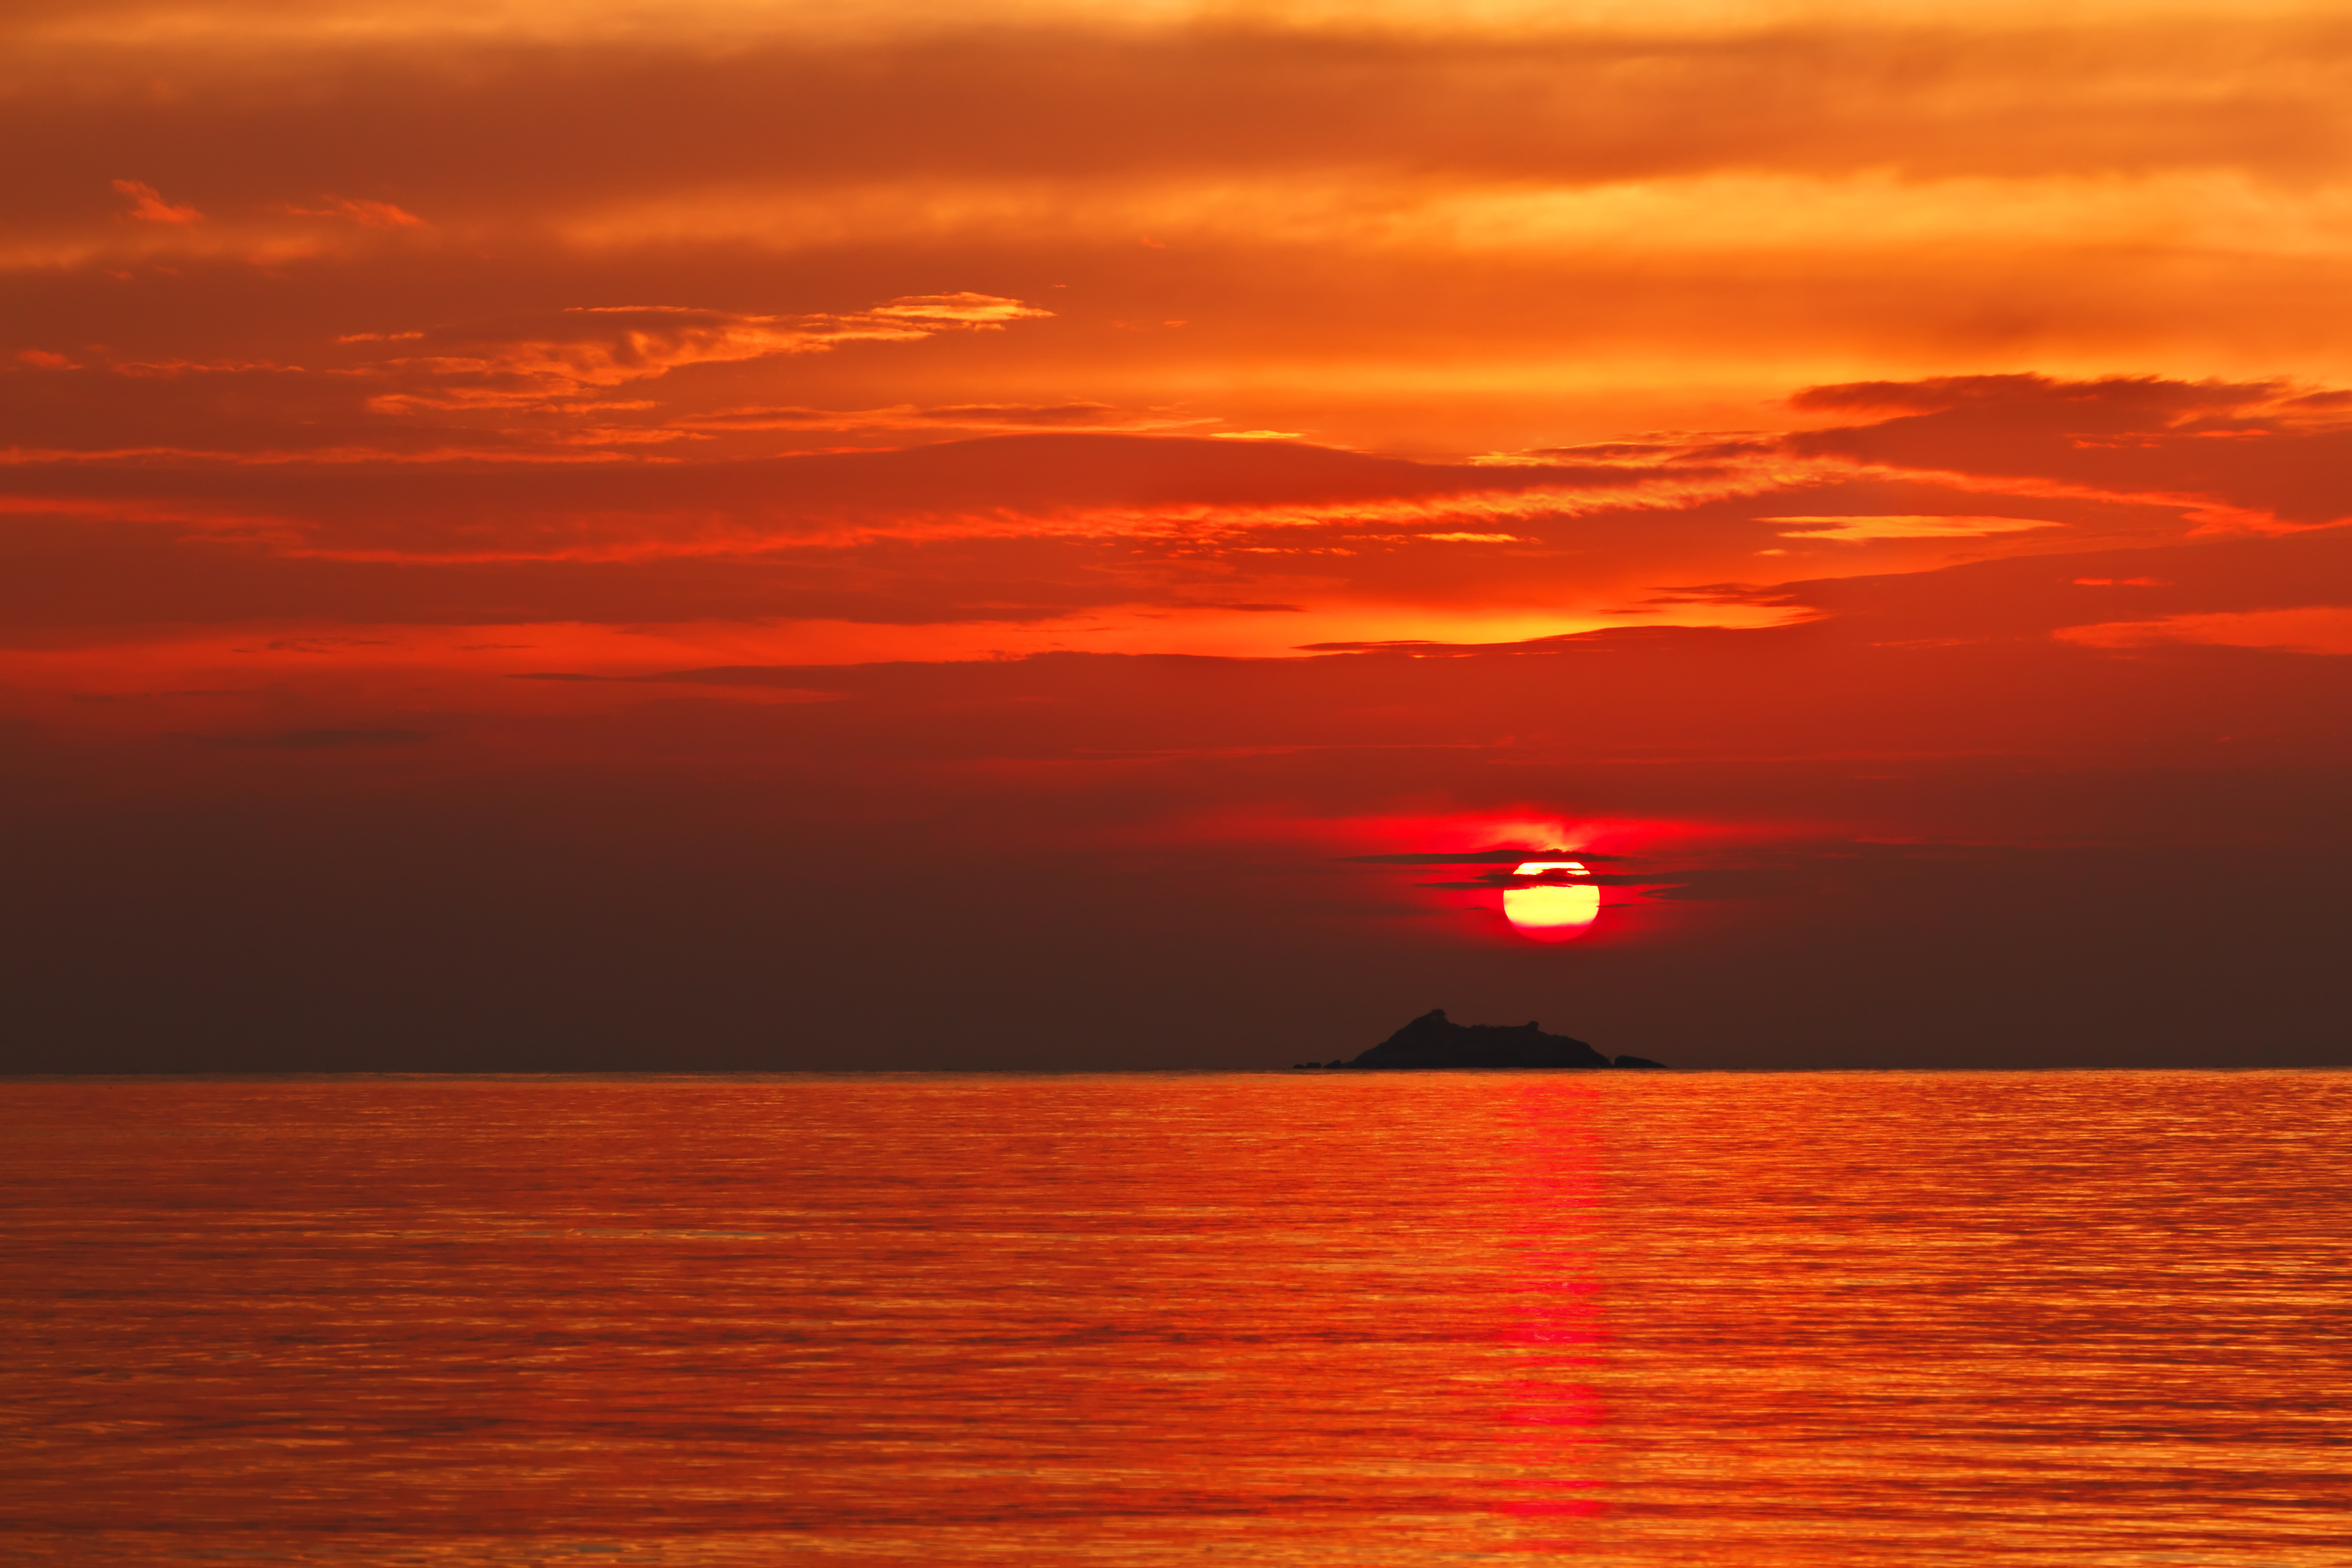 Sun setting over the sea with an island in the distance. The sky is different shades of red